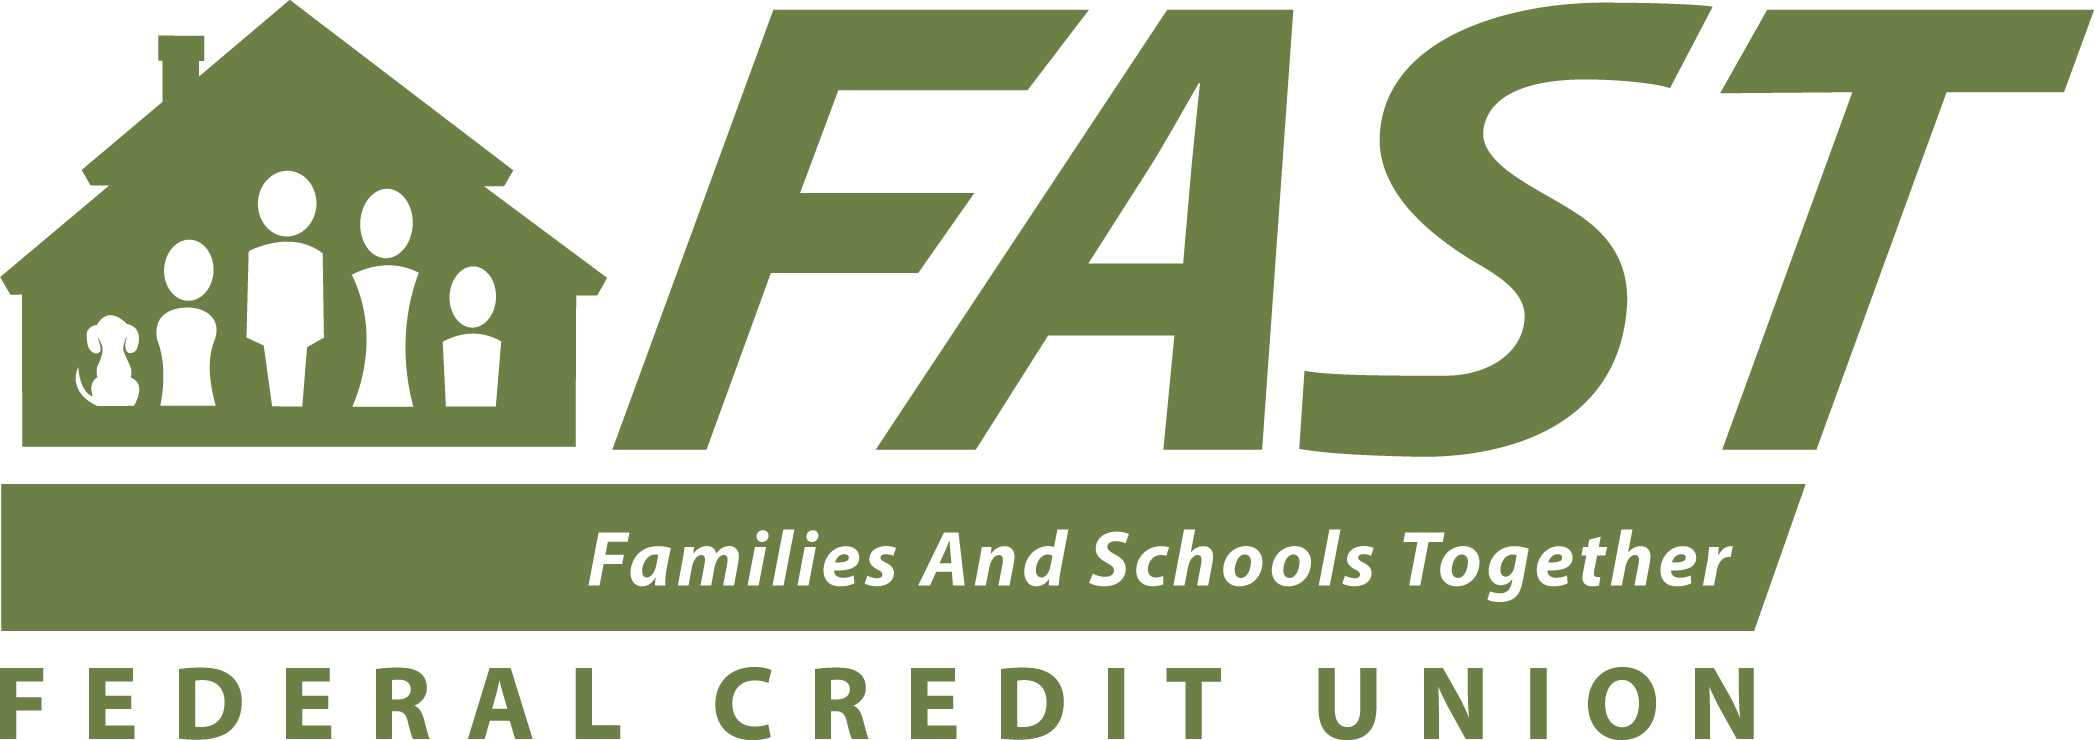 Families And Schools Together (FAST) Federal Credit Union was